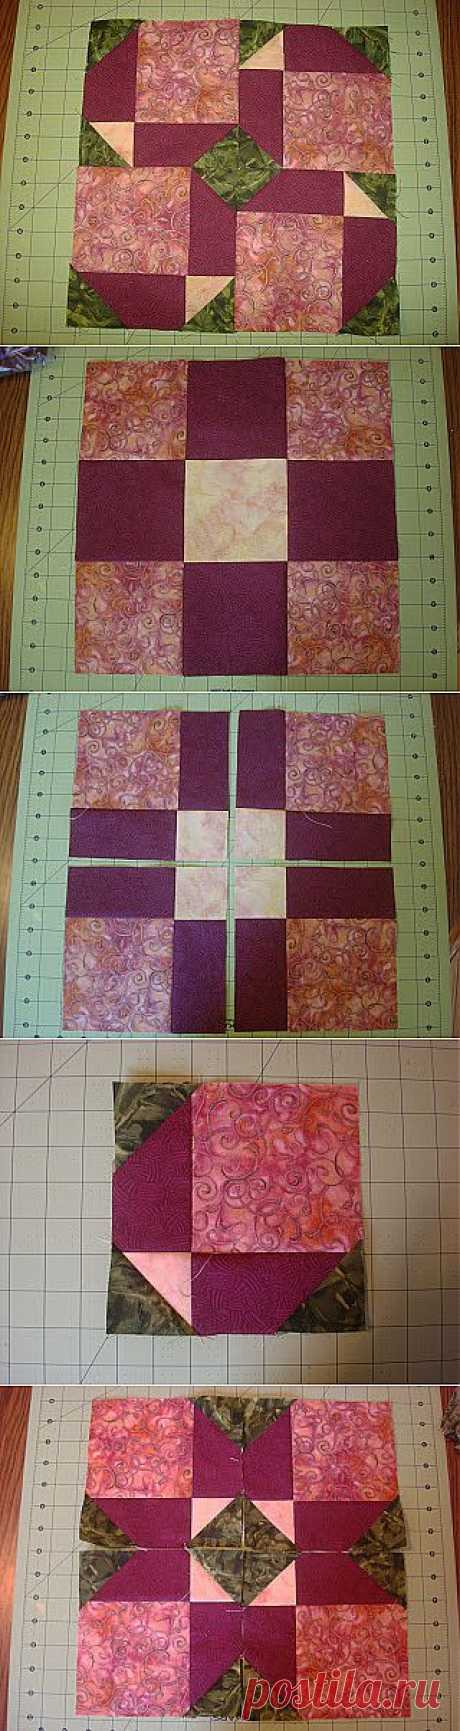 Little Bunny Quilts: Scrap Block Challenge: Garden Disappearing Nine Patch Tutorial